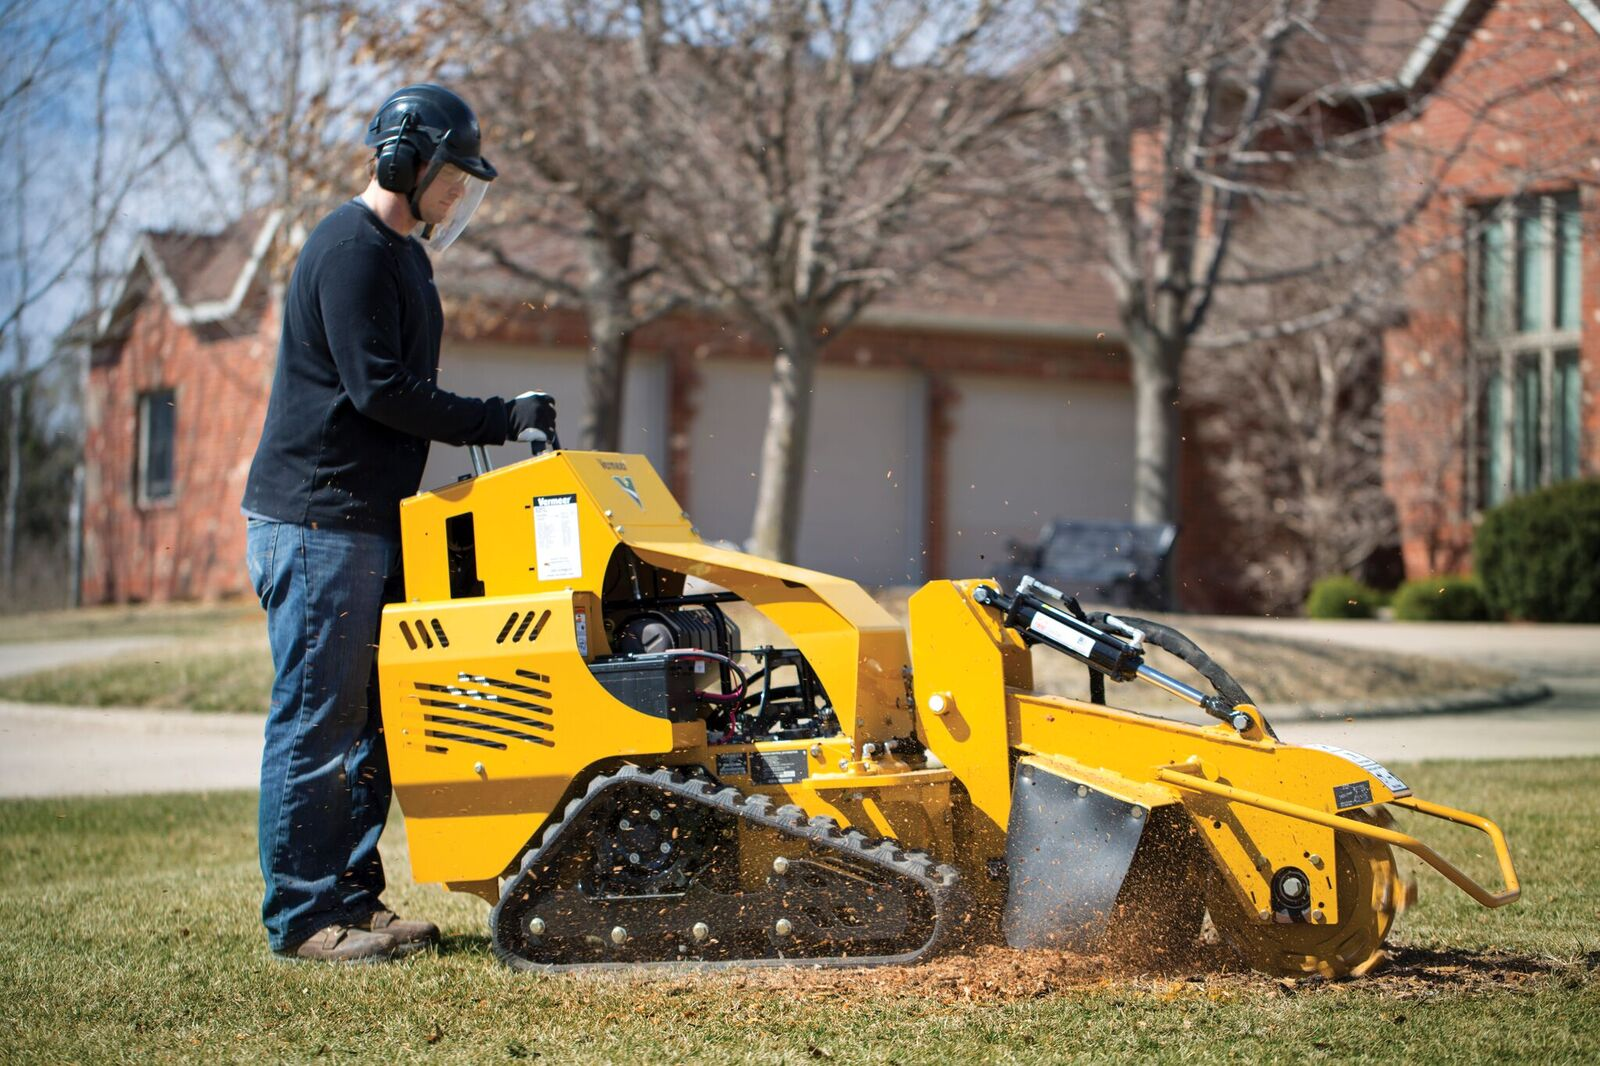 Nipomo-Santa Maria Tree Trimming and Stump Grinding Services-We Offer Tree Trimming Services, Tree Removal, Tree Pruning, Tree Cutting, Residential and Commercial Tree Trimming Services, Storm Damage, Emergency Tree Removal, Land Clearing, Tree Companies, Tree Care Service, Stump Grinding, and we're the Best Tree Trimming Company Near You Guaranteed!